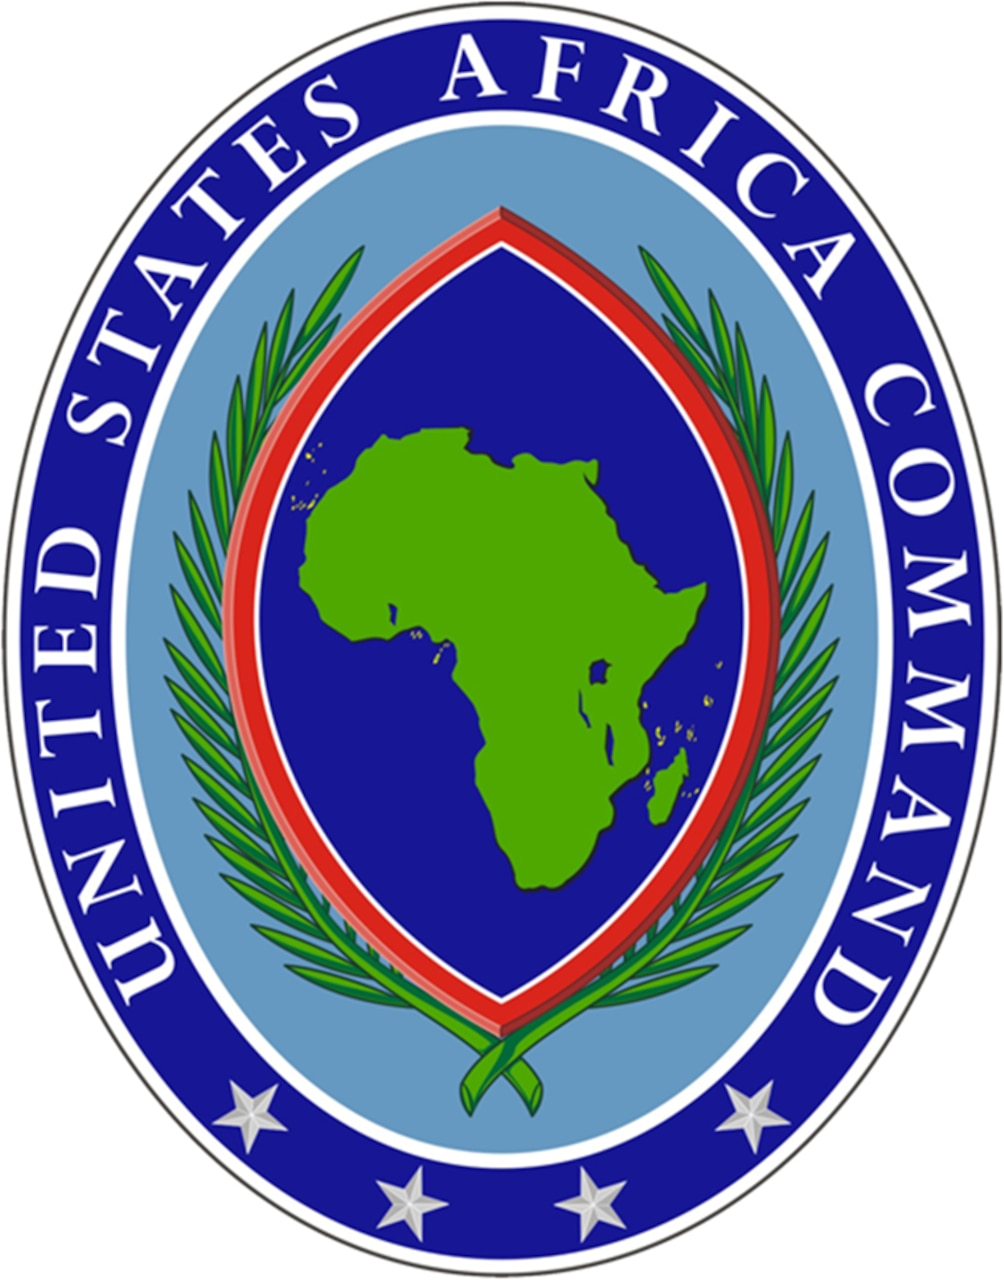 U.S. Africa Command, in concert with interagency and international partners, builds defense capabilities, responds to crisis, and deters and defeats transnational threats to advance U.S. national interests and promote regional security, stability, and prosperity.